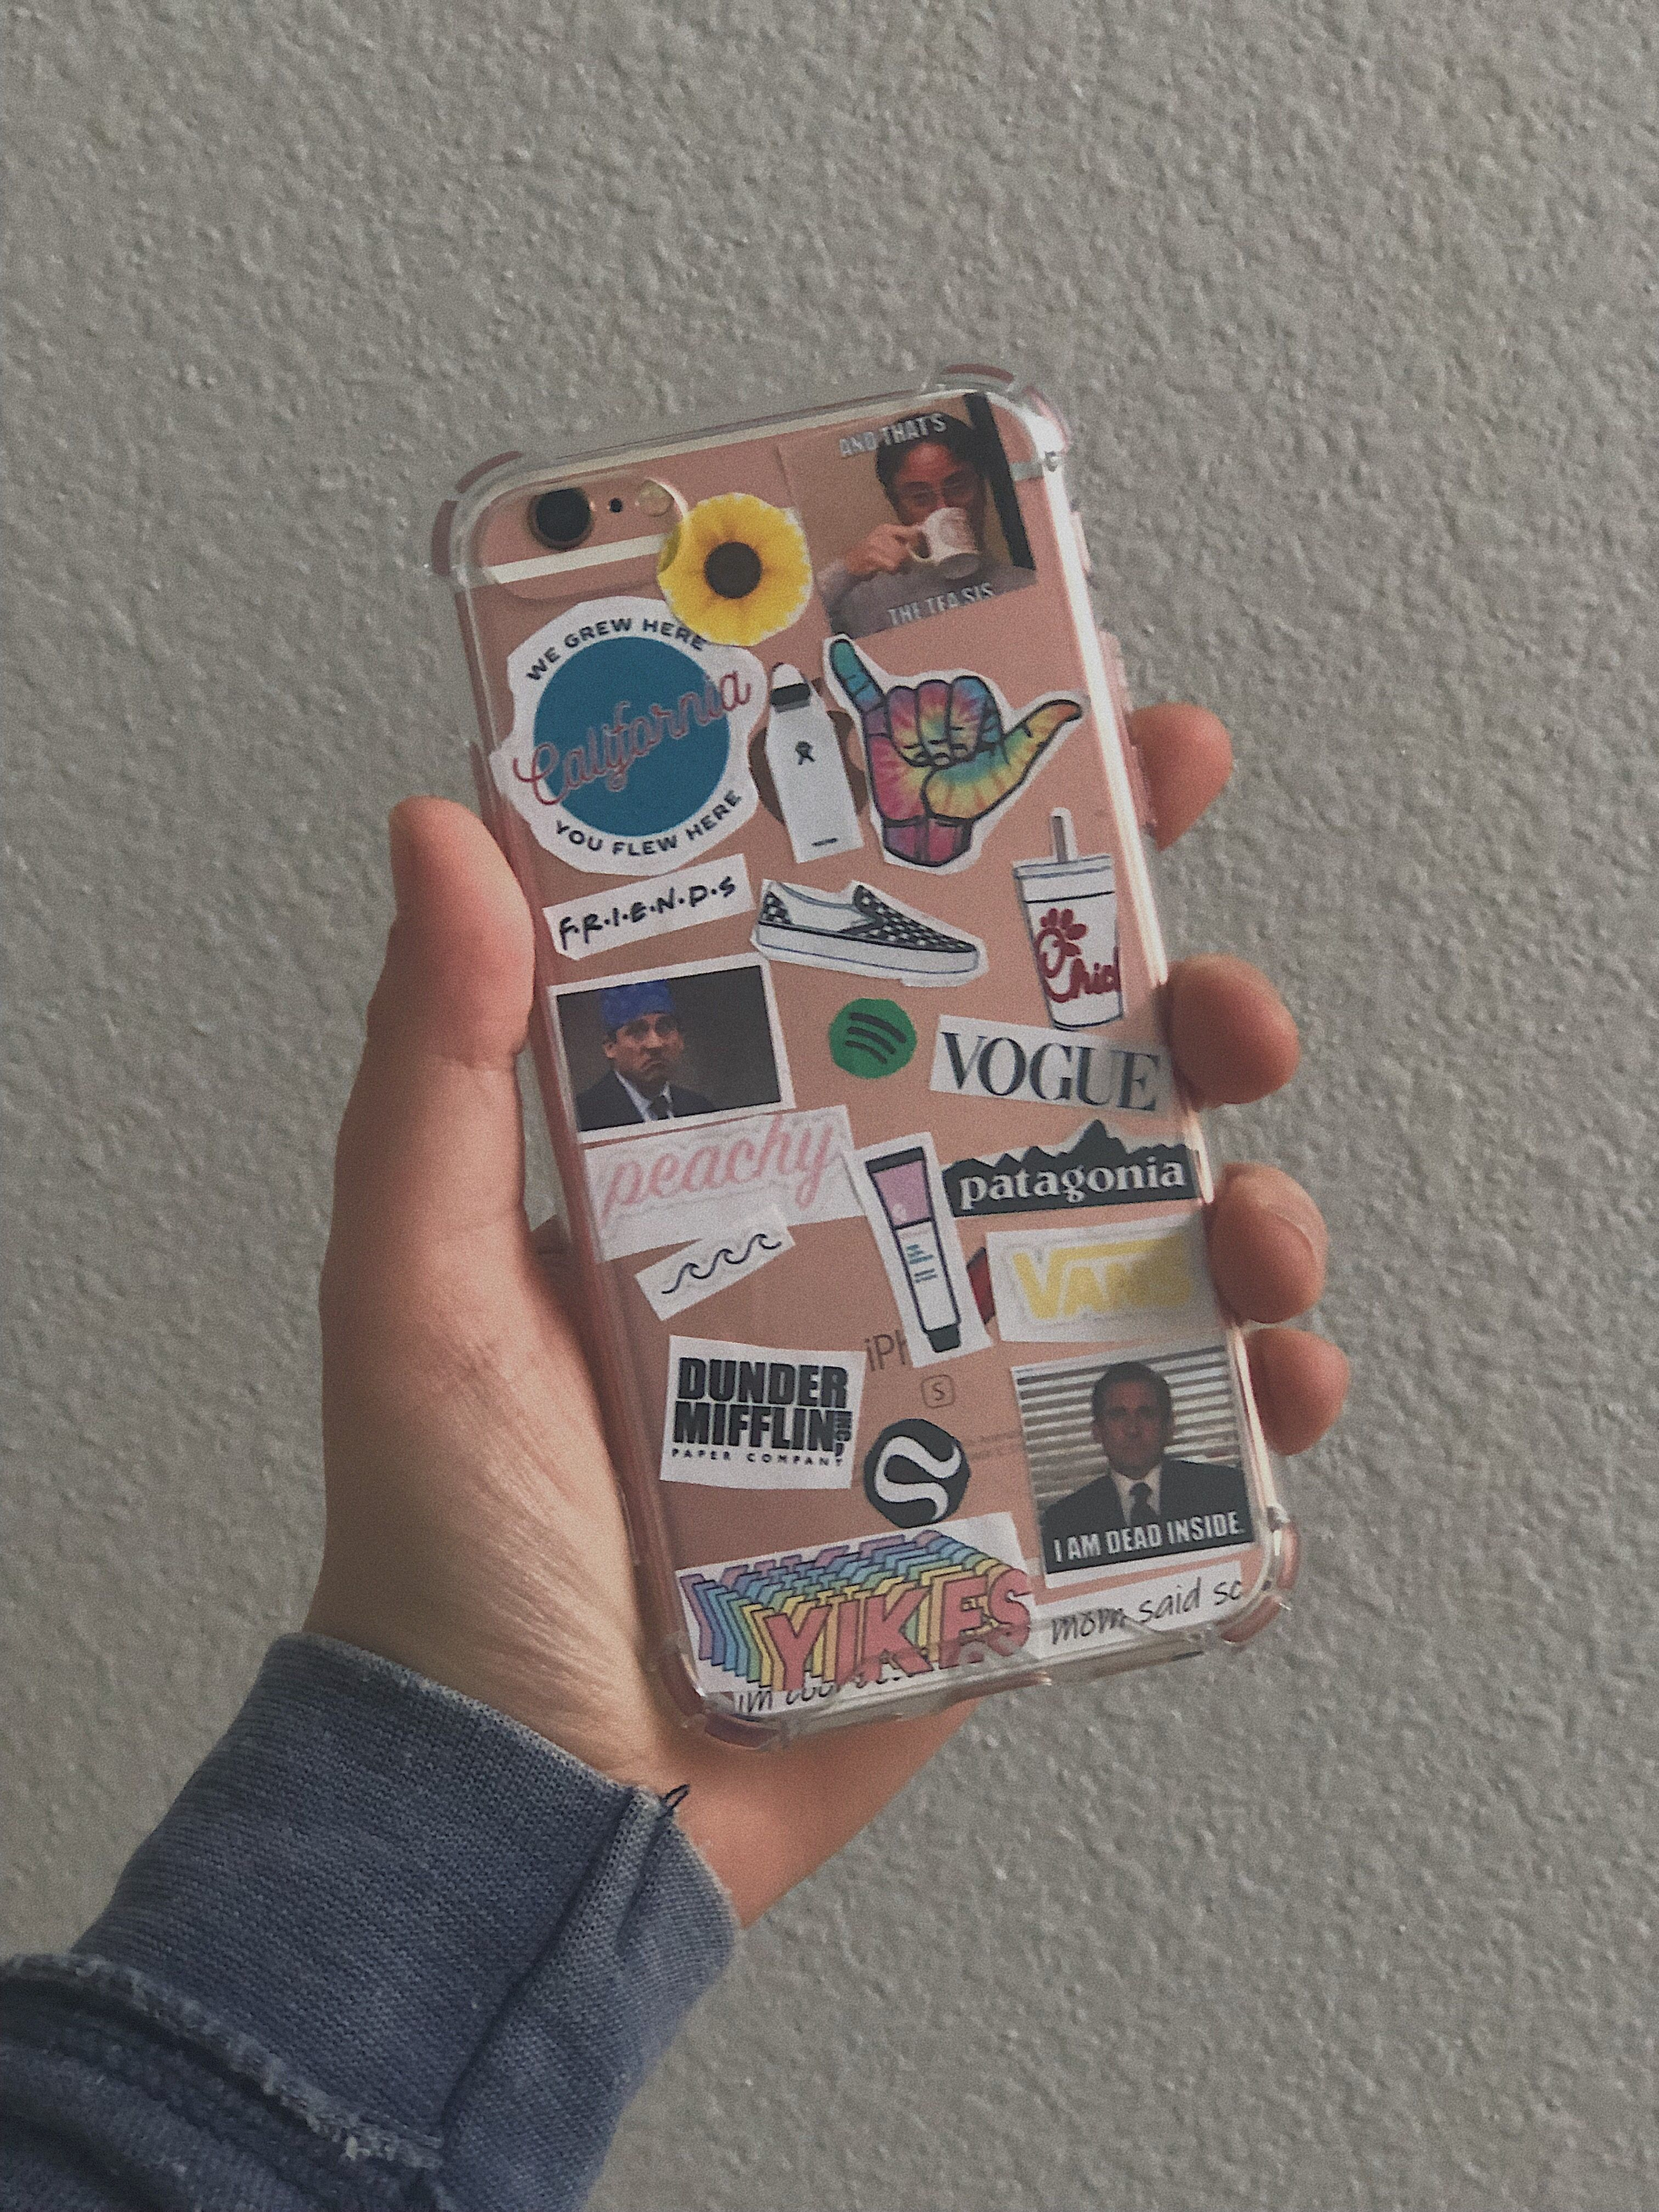 Pin by riley🌙 on stickers ☆ | Bff phone cases, Diy phone ...